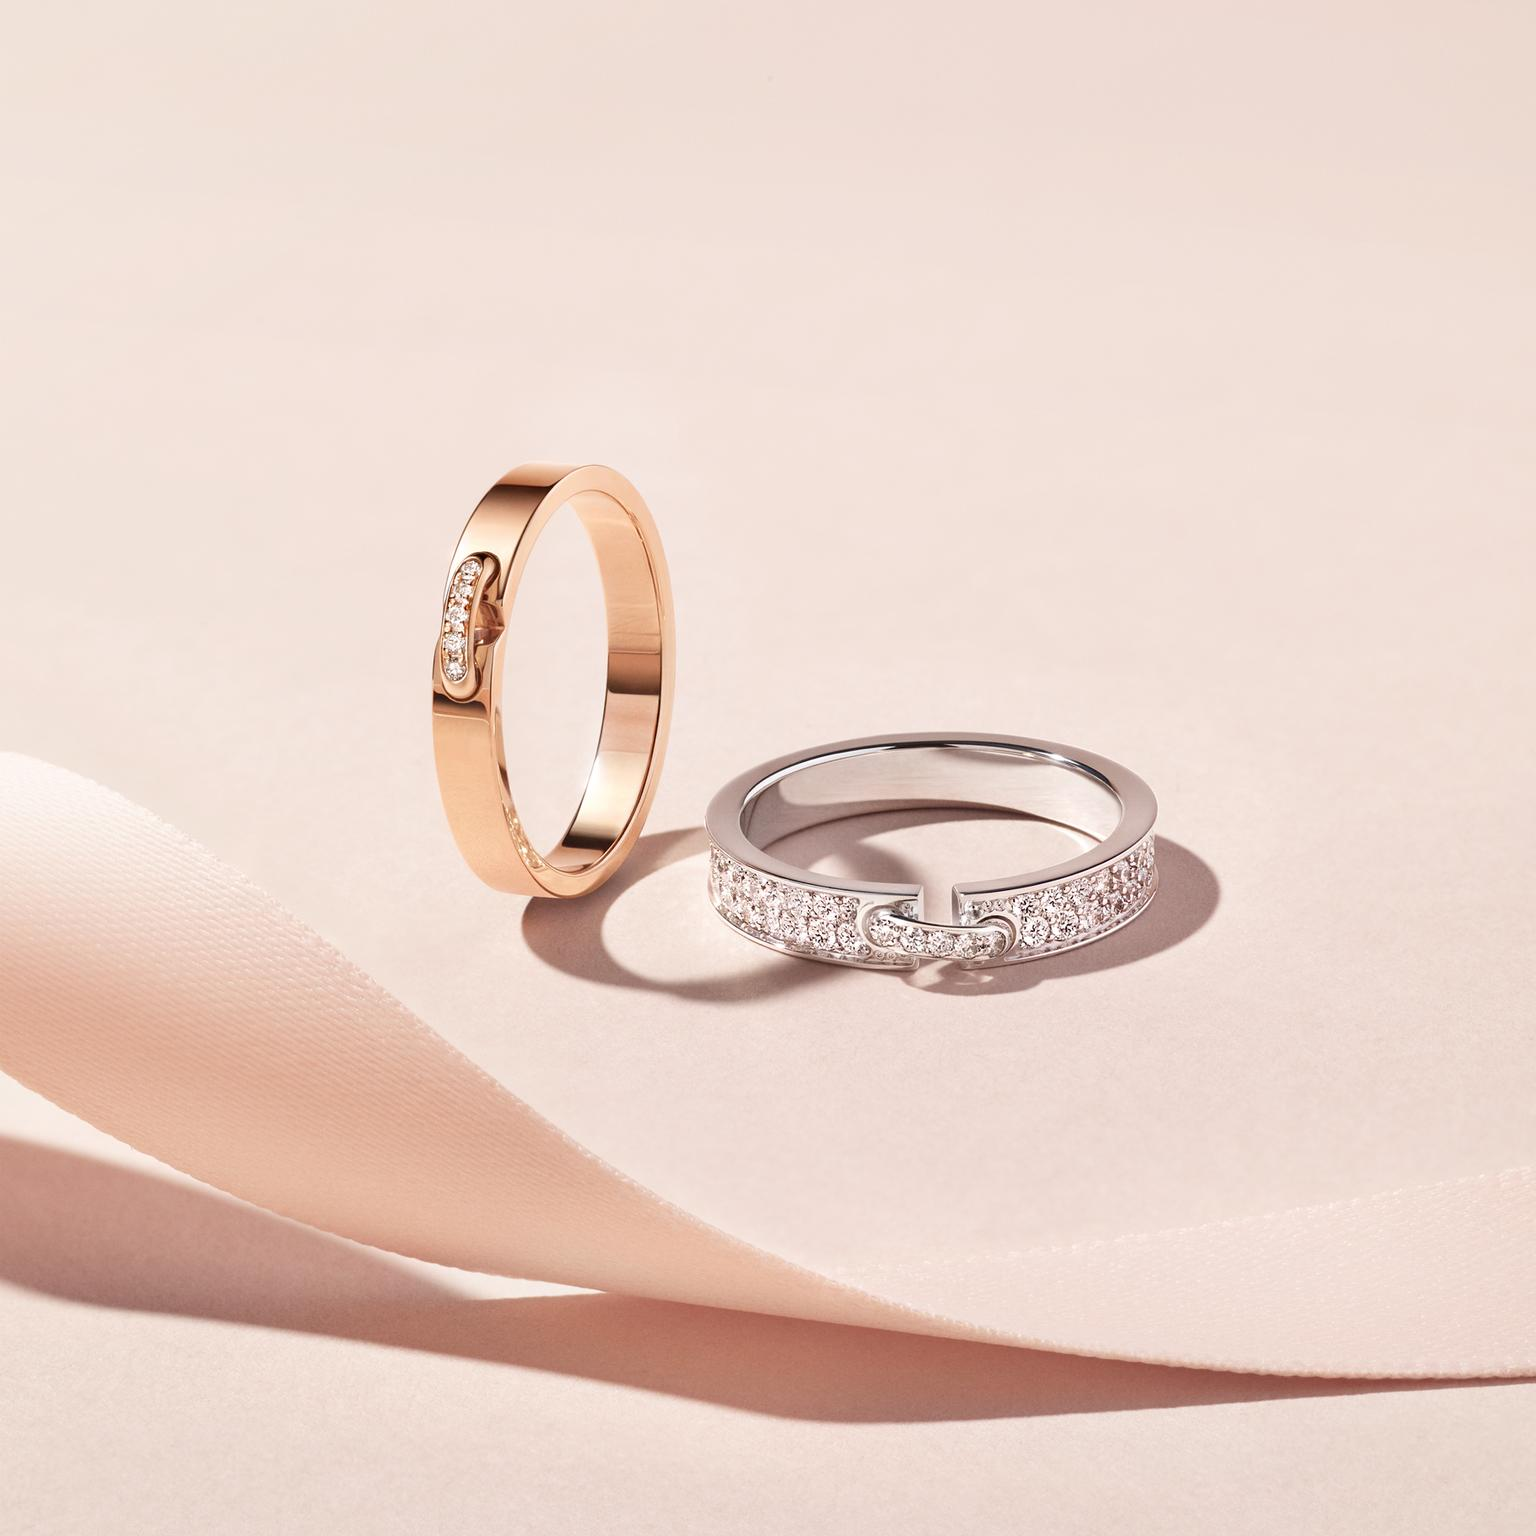 Chaumet Liens Evidence wedding bands